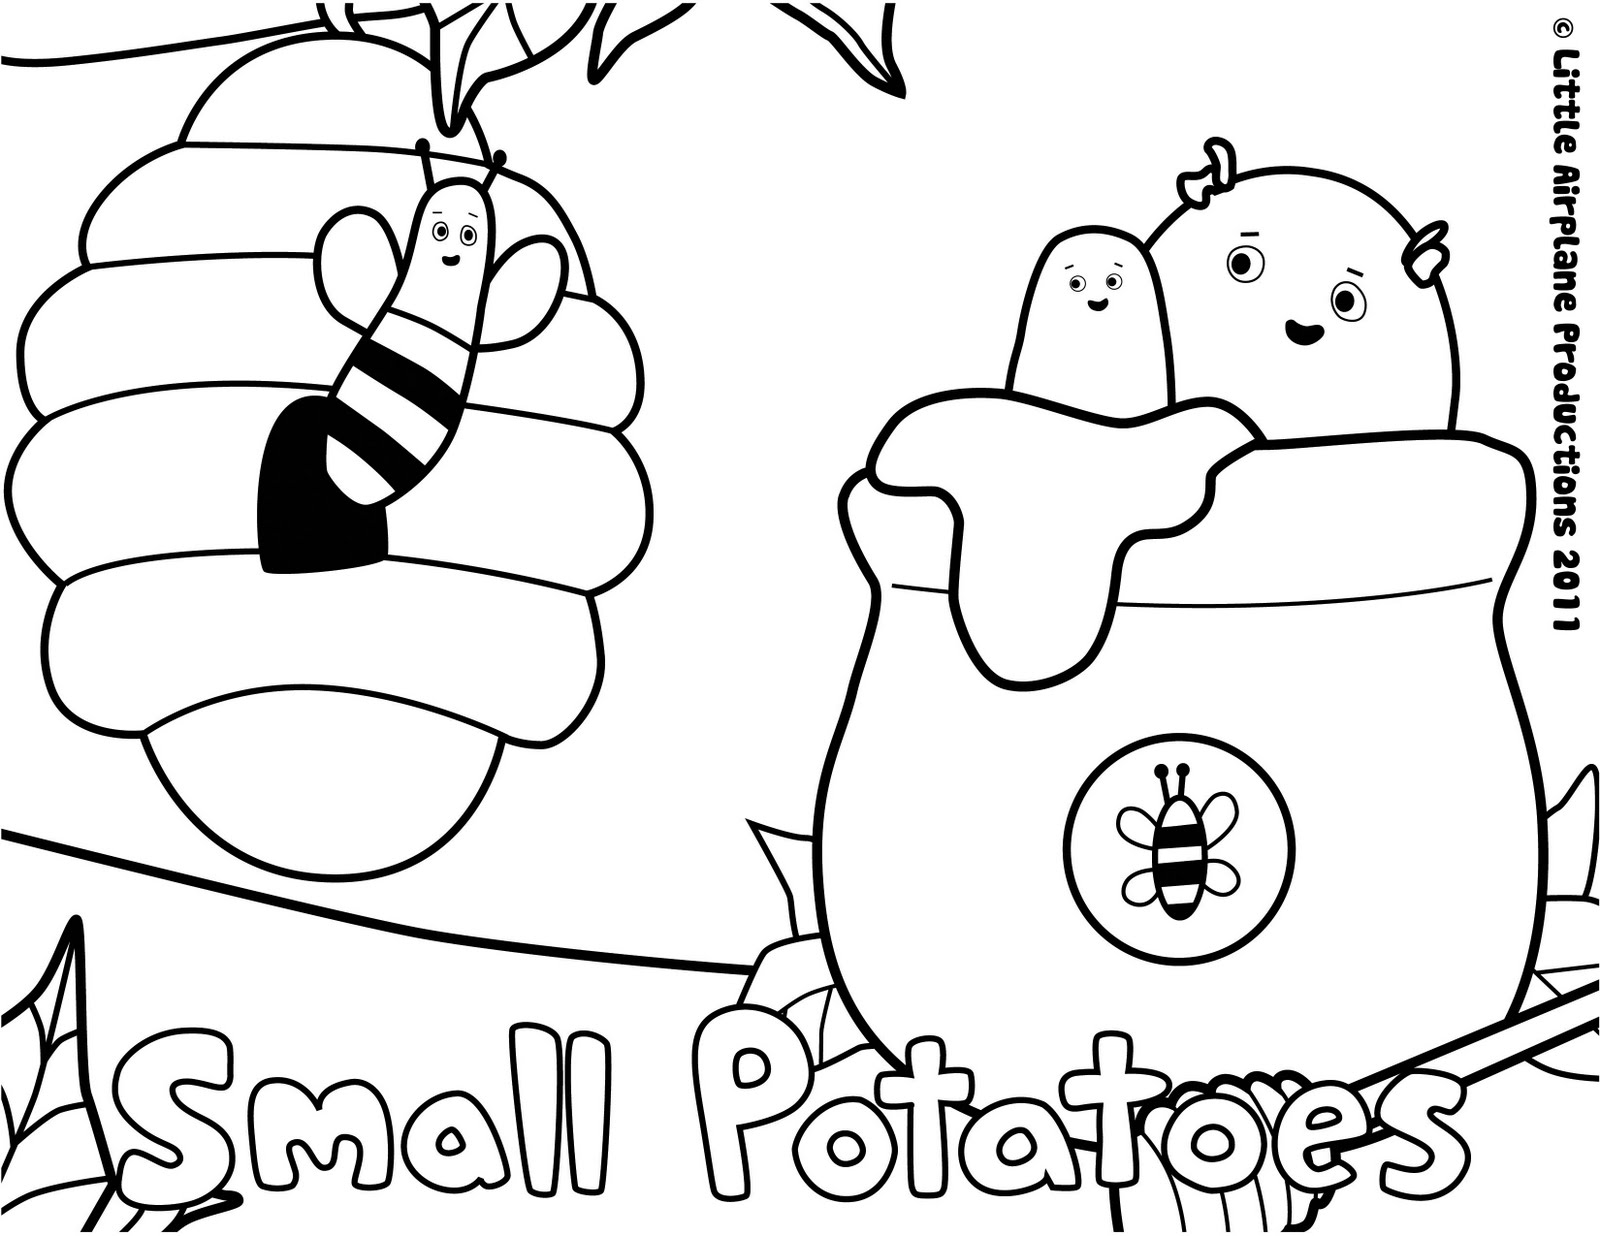 Erica Kepler: Small Potatoes Coloring Pages